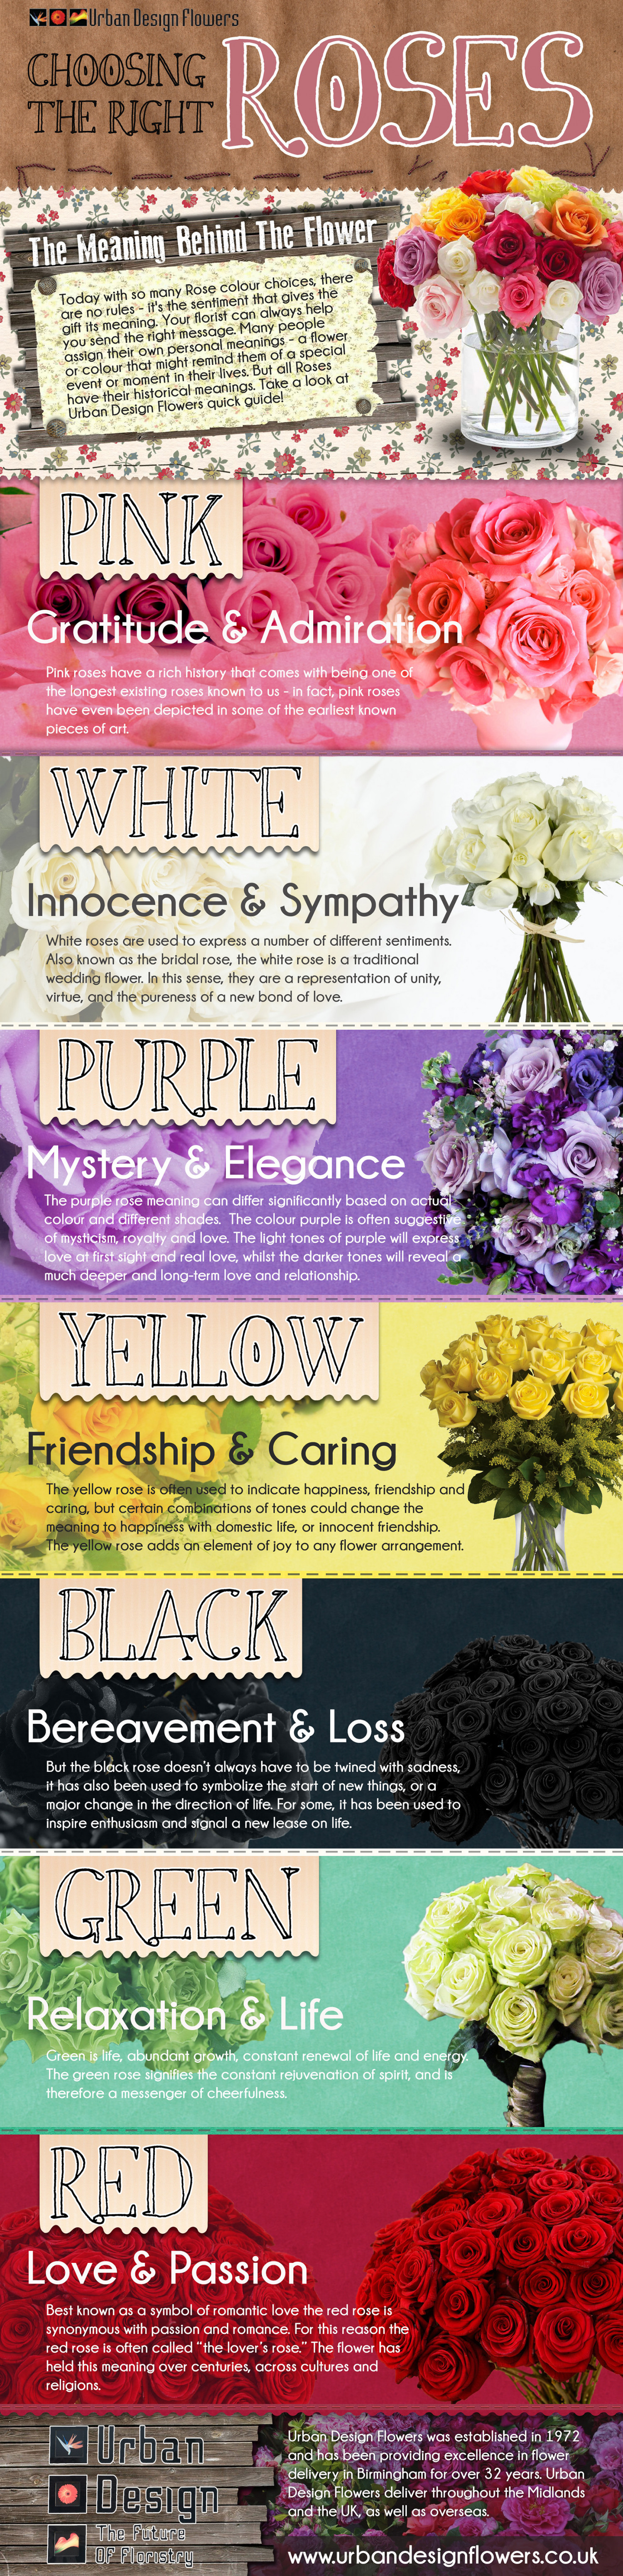 The Colors of Roses Infographic